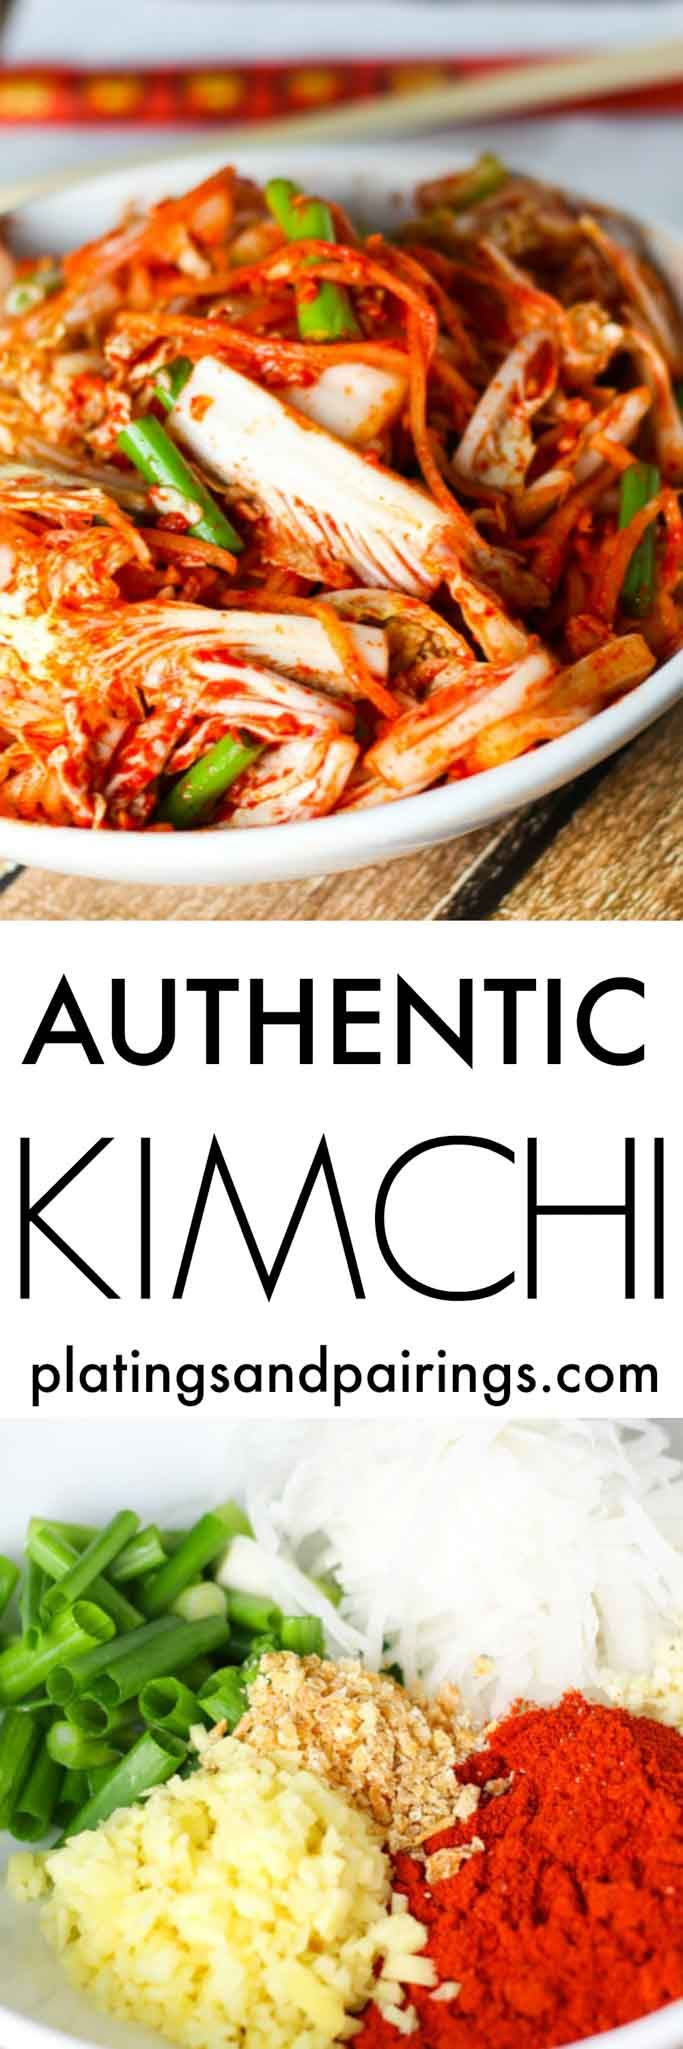 Learn how to make authentic Kimchi (Kimchee) at home. It's easy to do with these simple steps! | platingsandpairings.com